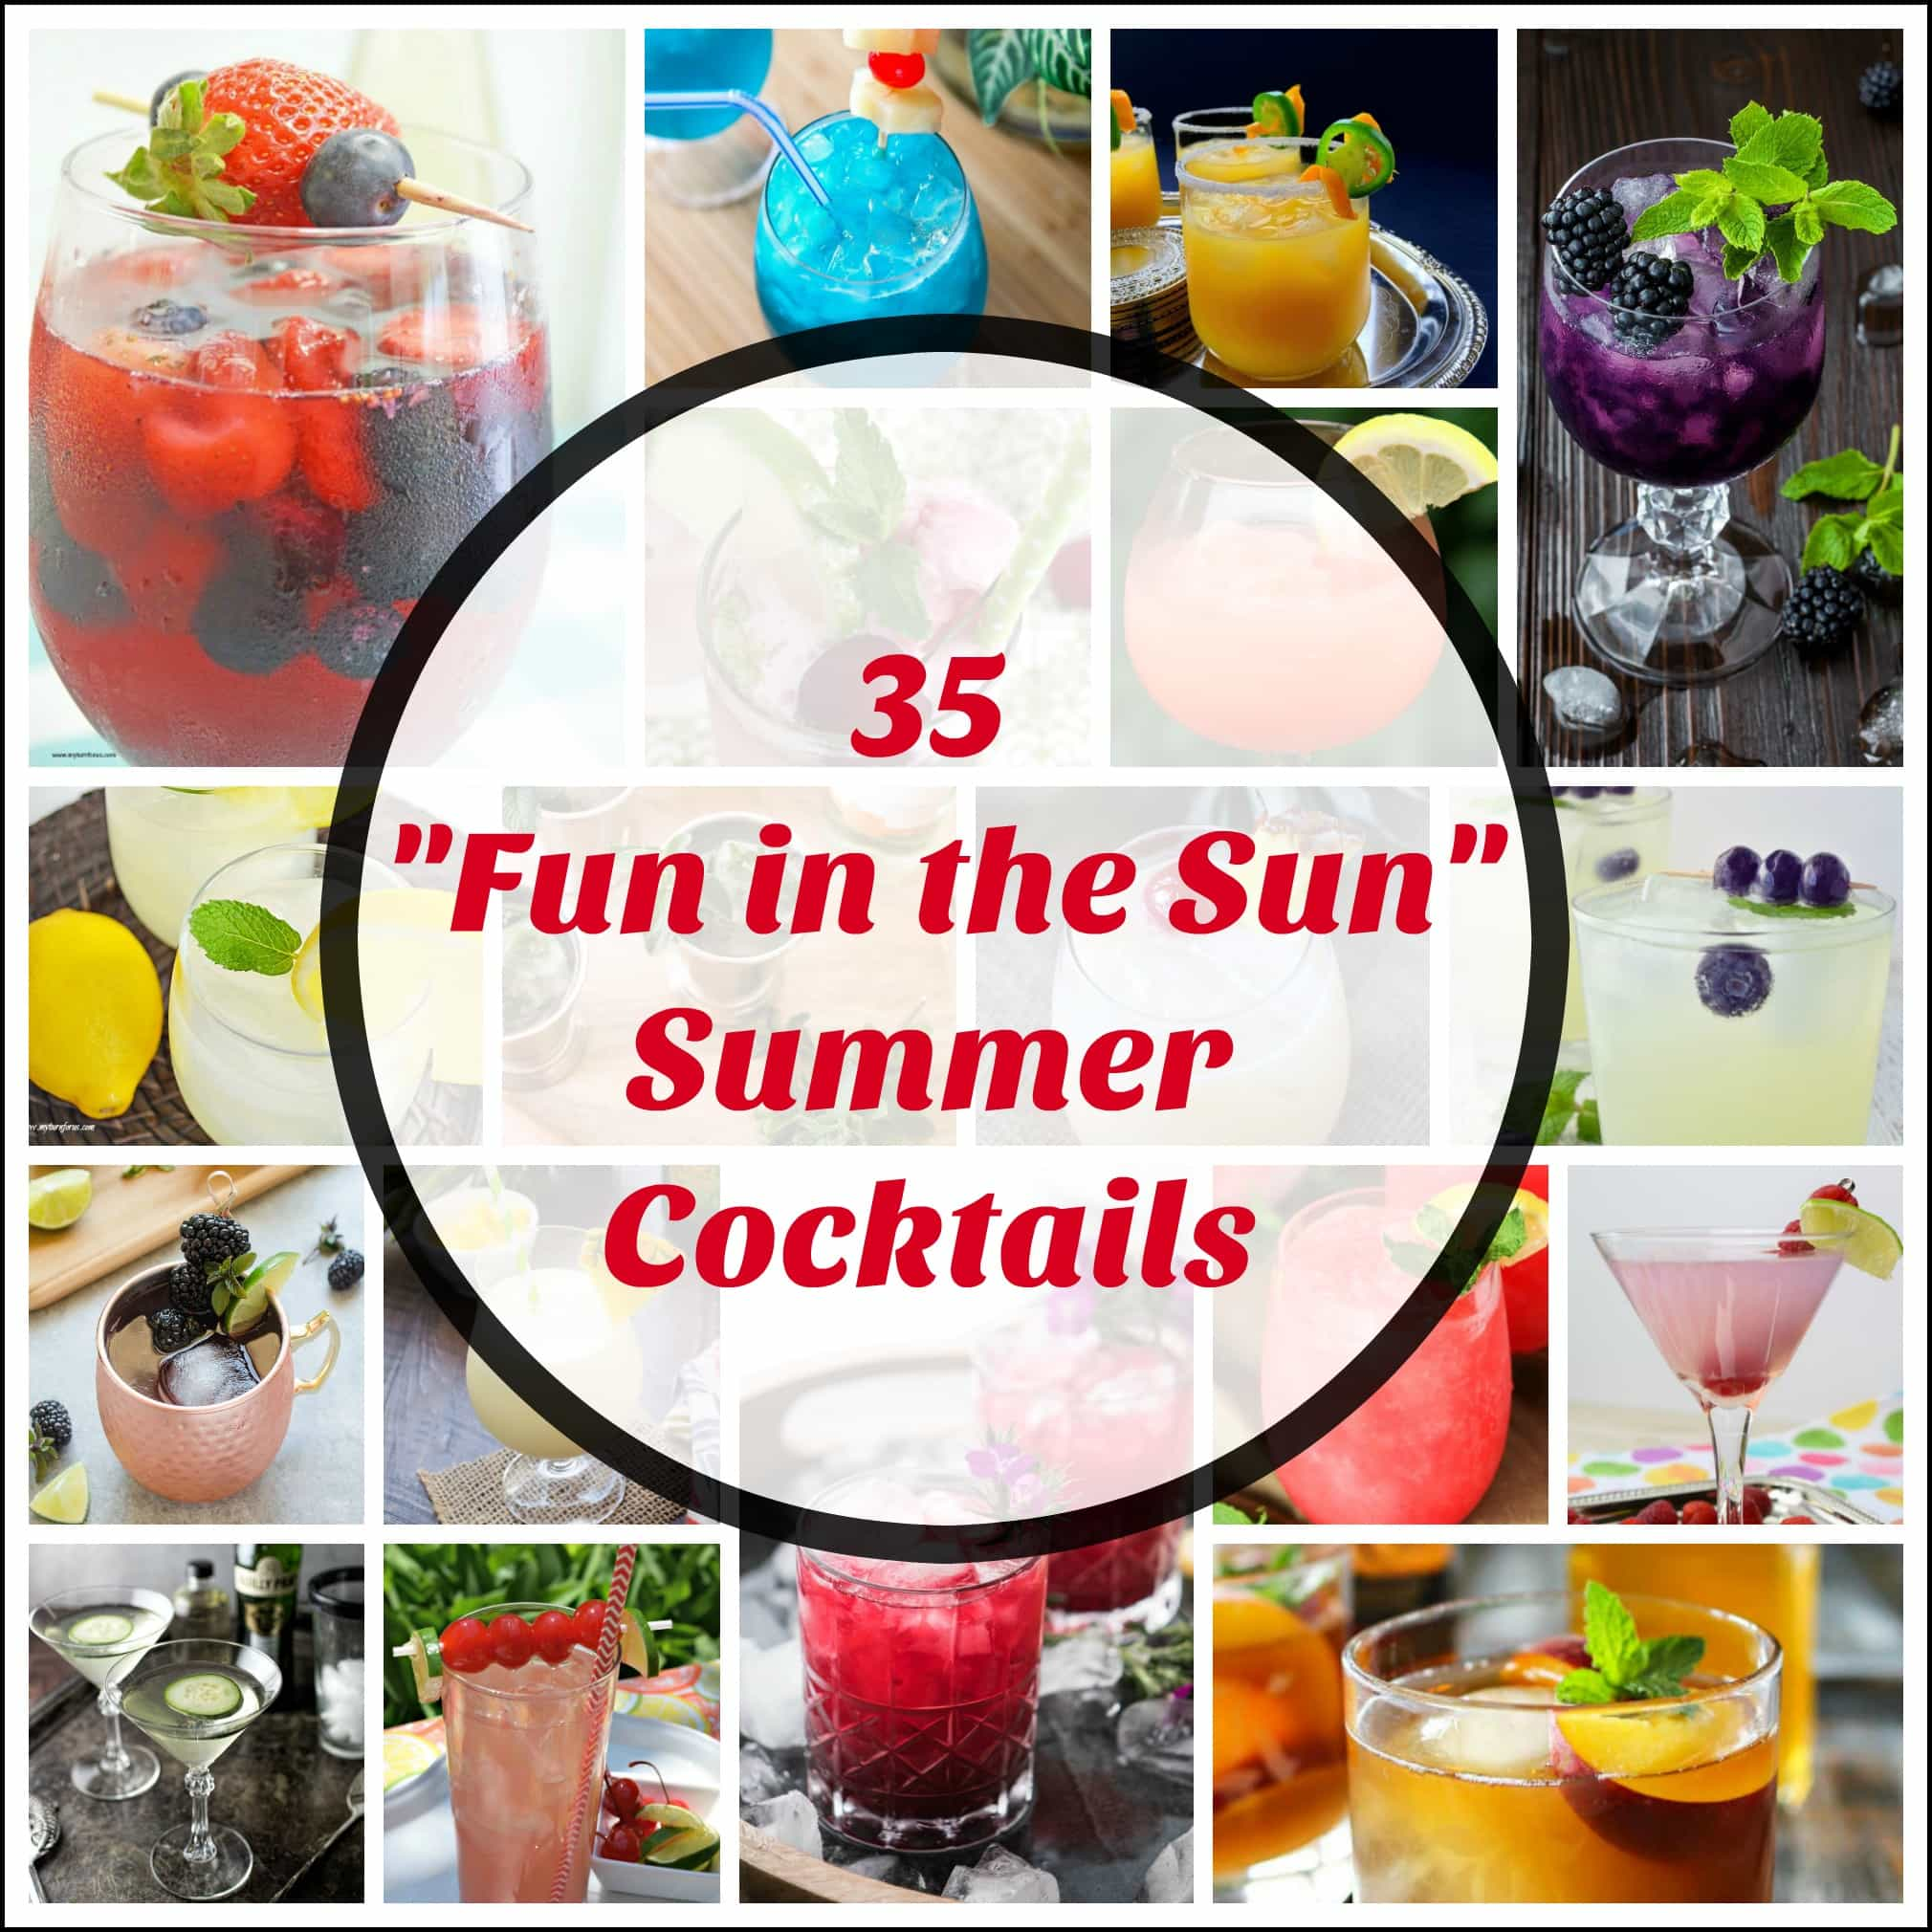 Fun in the Sun summer Cocktails